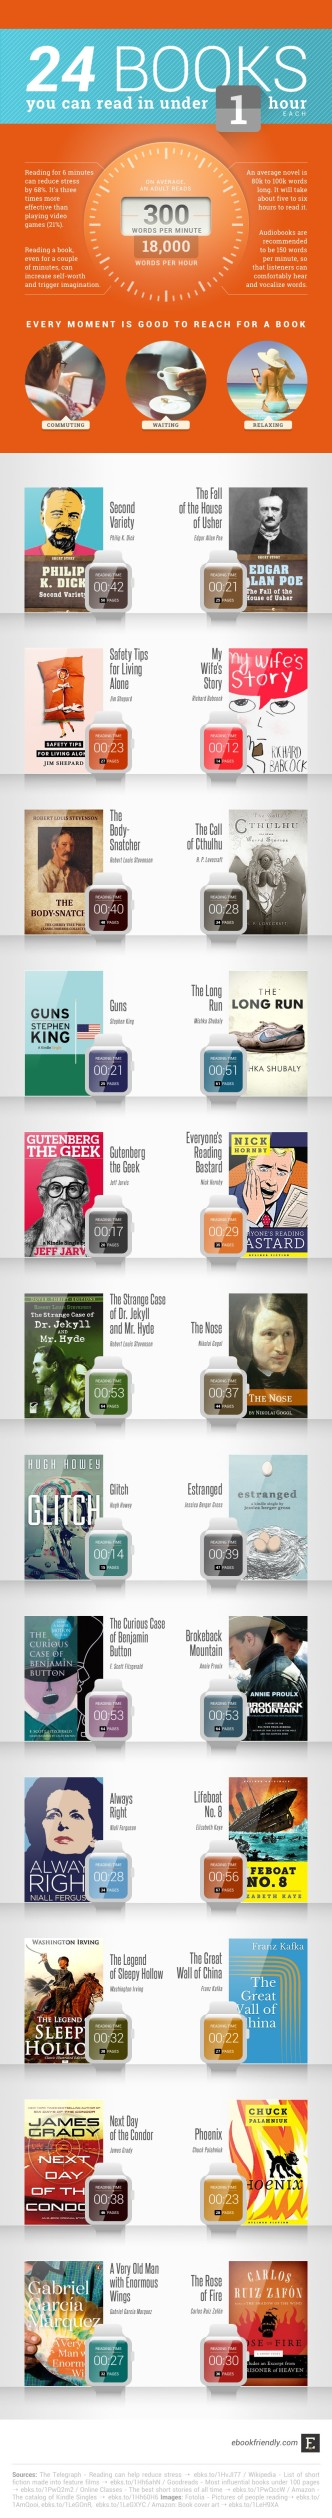 24 books you can read in under an hour each #infographic